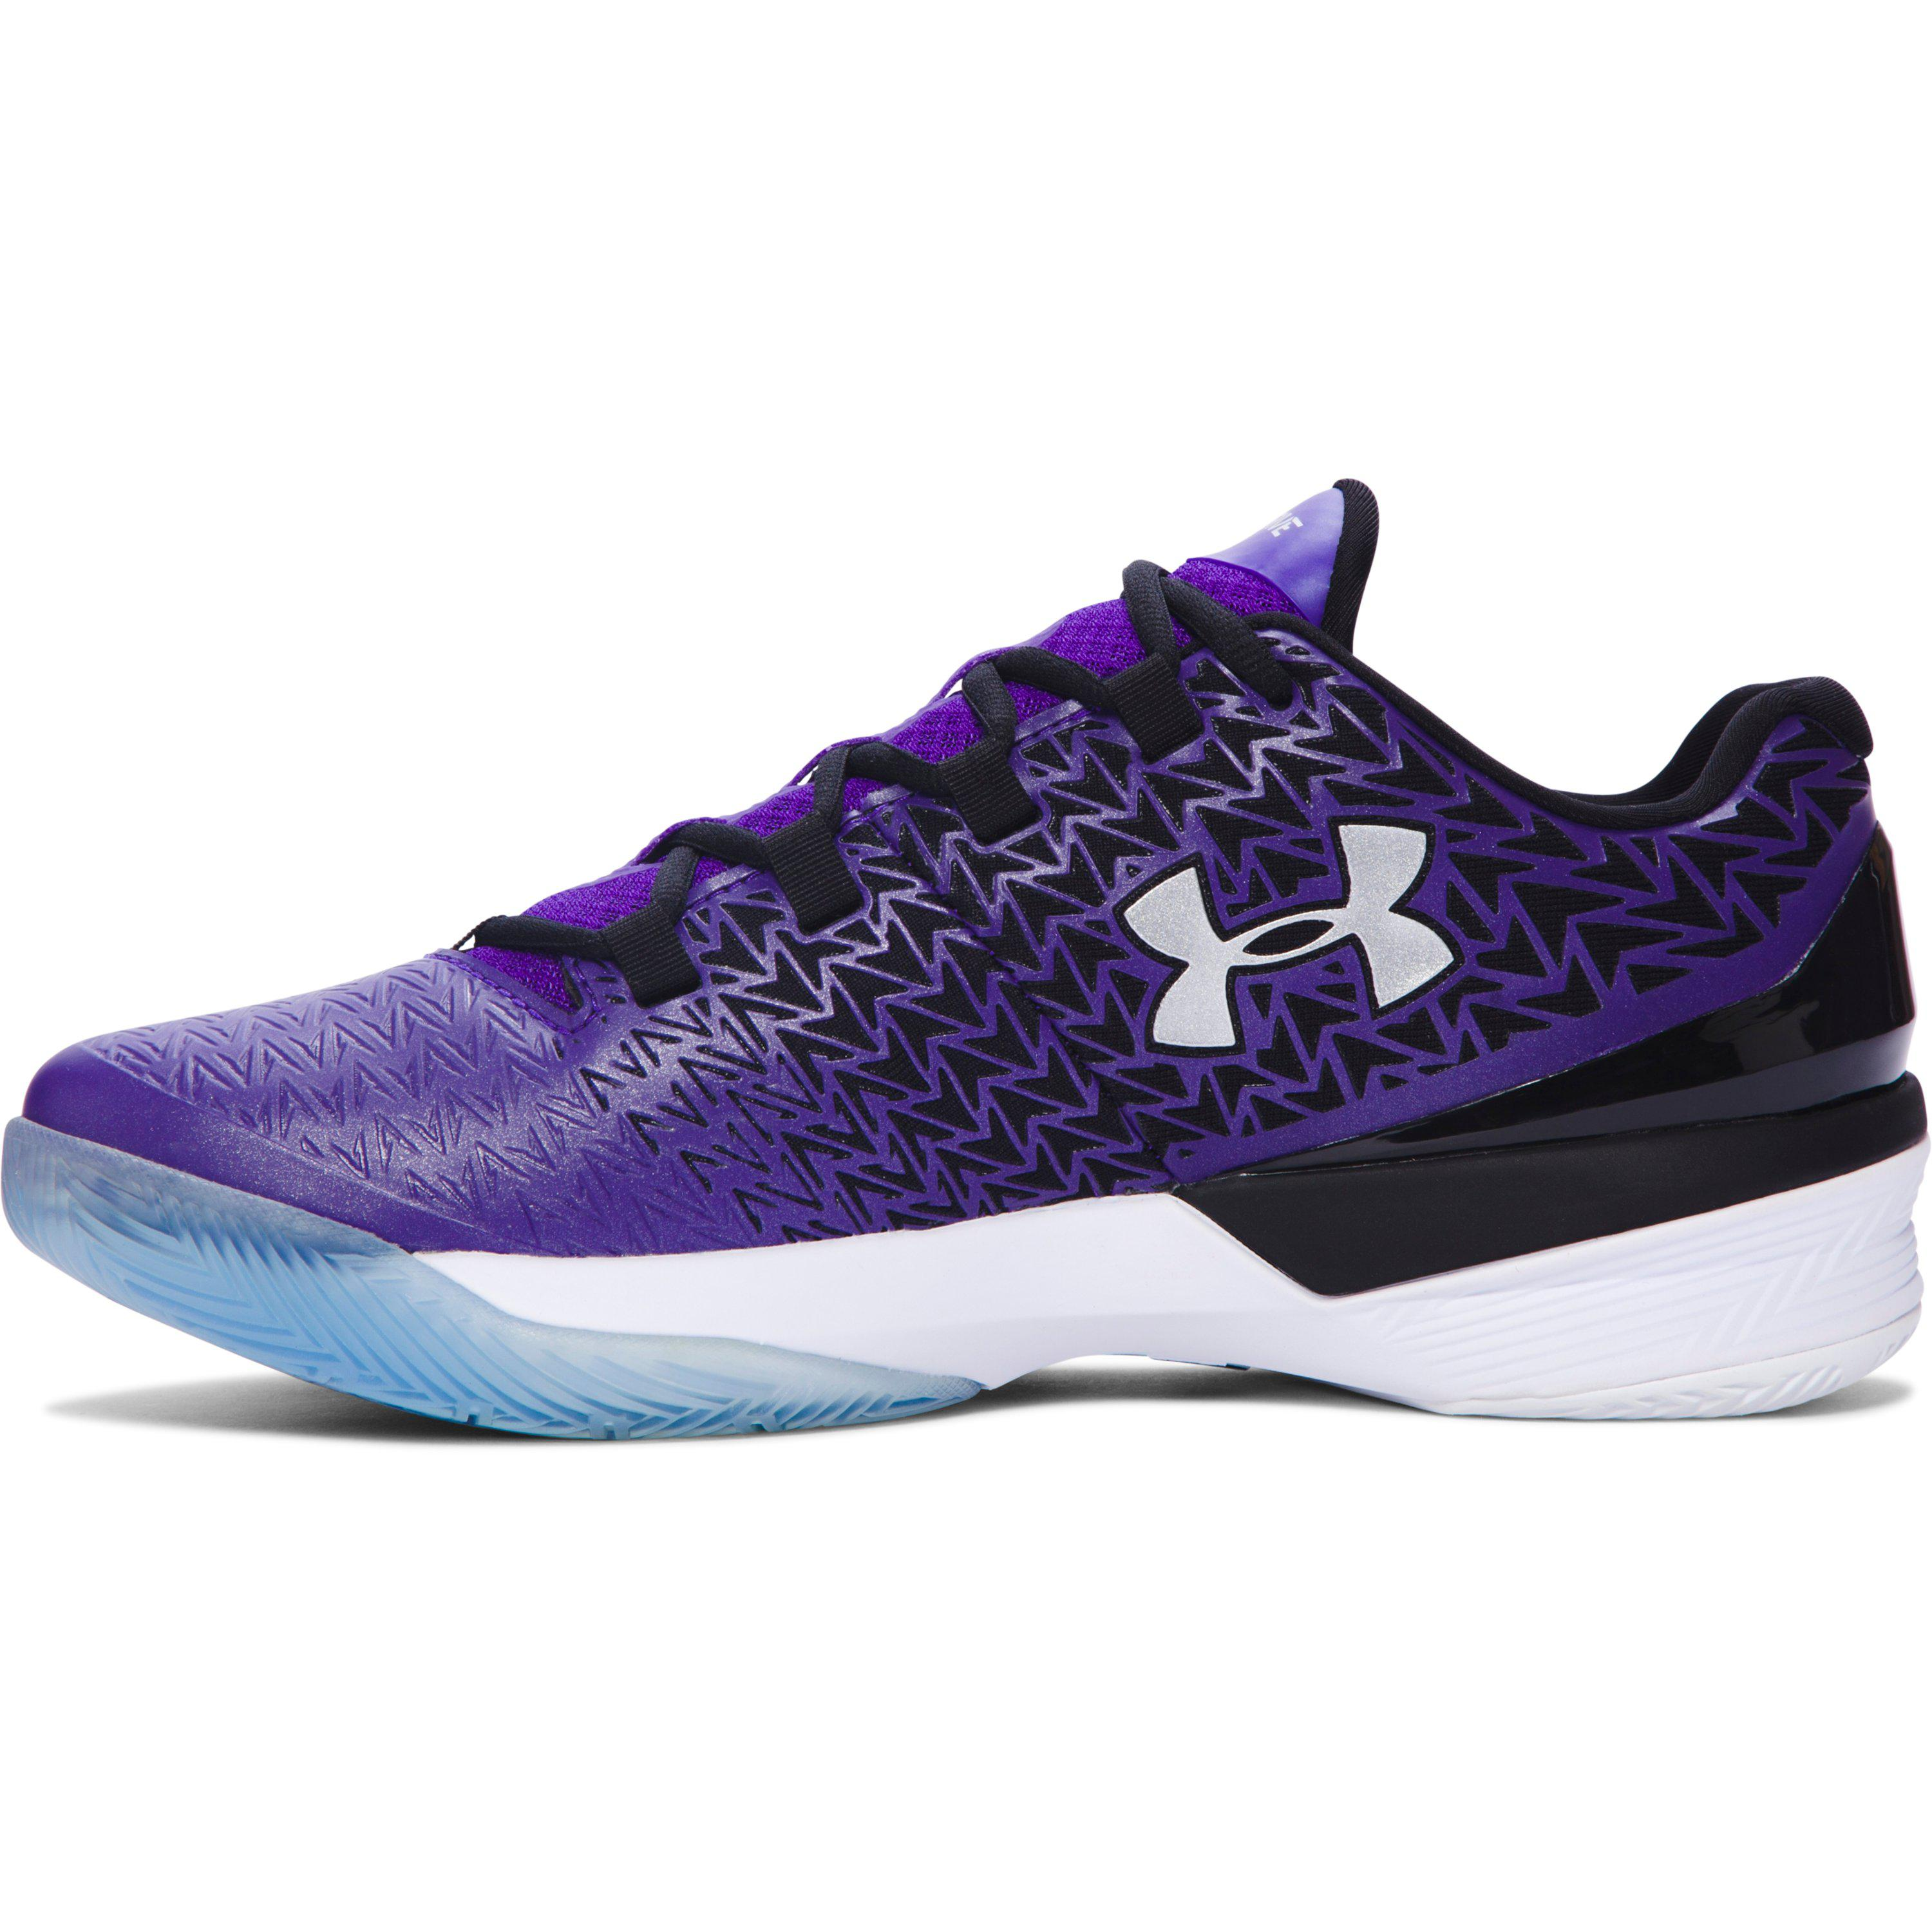 sale retailer e1798 620c9 ... hot lyst under armour mens ua clutchfit drive 3 low basketball shoes  f6dca 3b76a